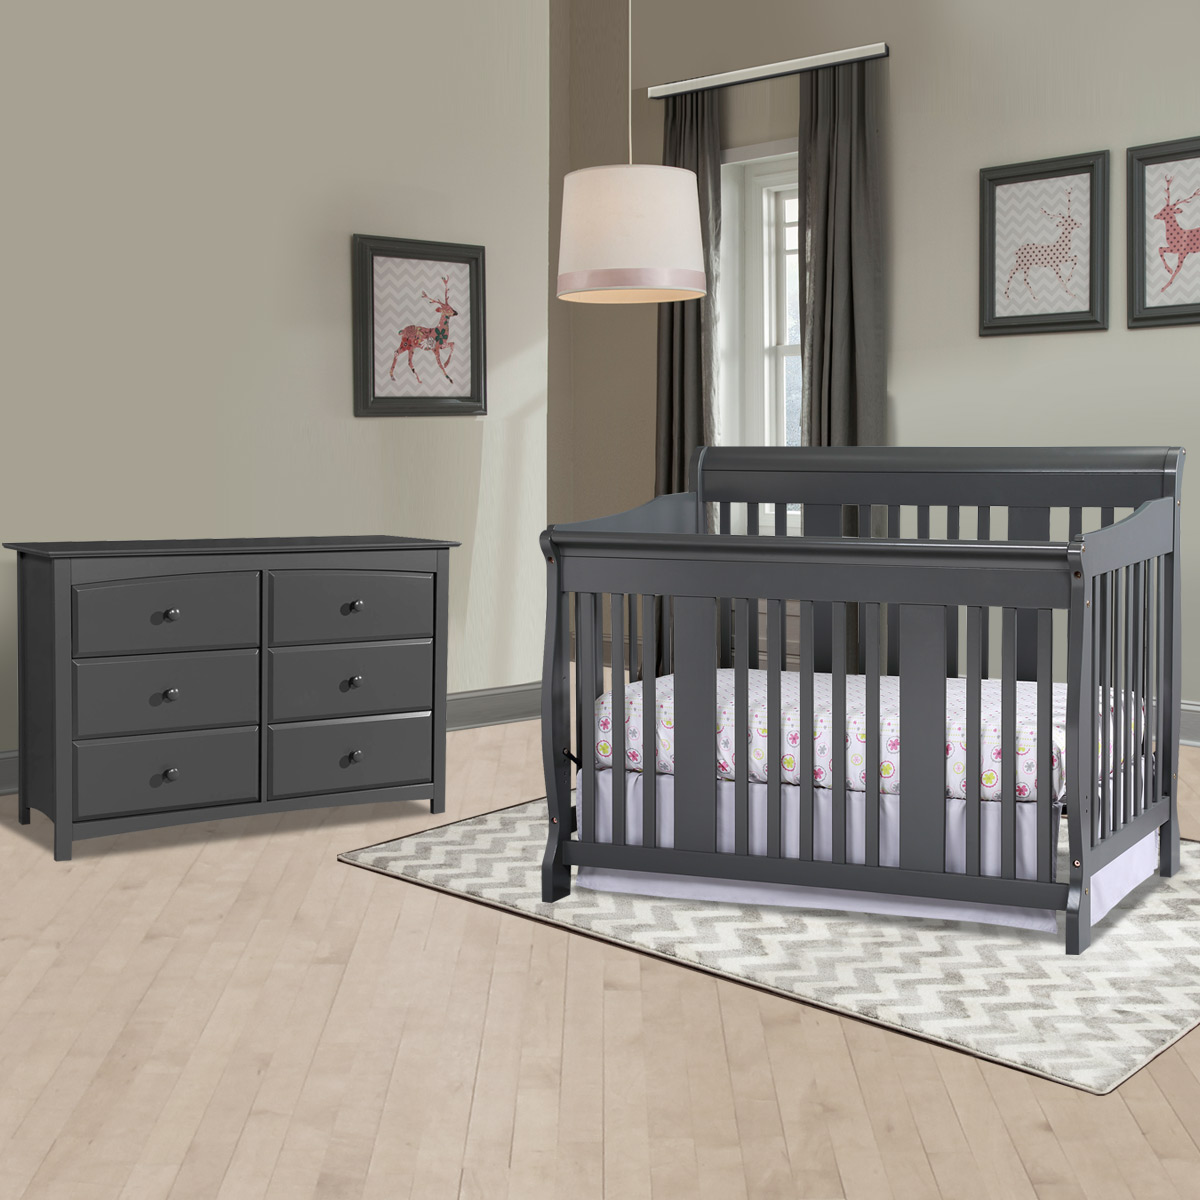 Storkcraft Tuscany 2 Piece Nursery Set Convertible Crib And Kenton 6 Drawer Dresser In Gray Free Shipping